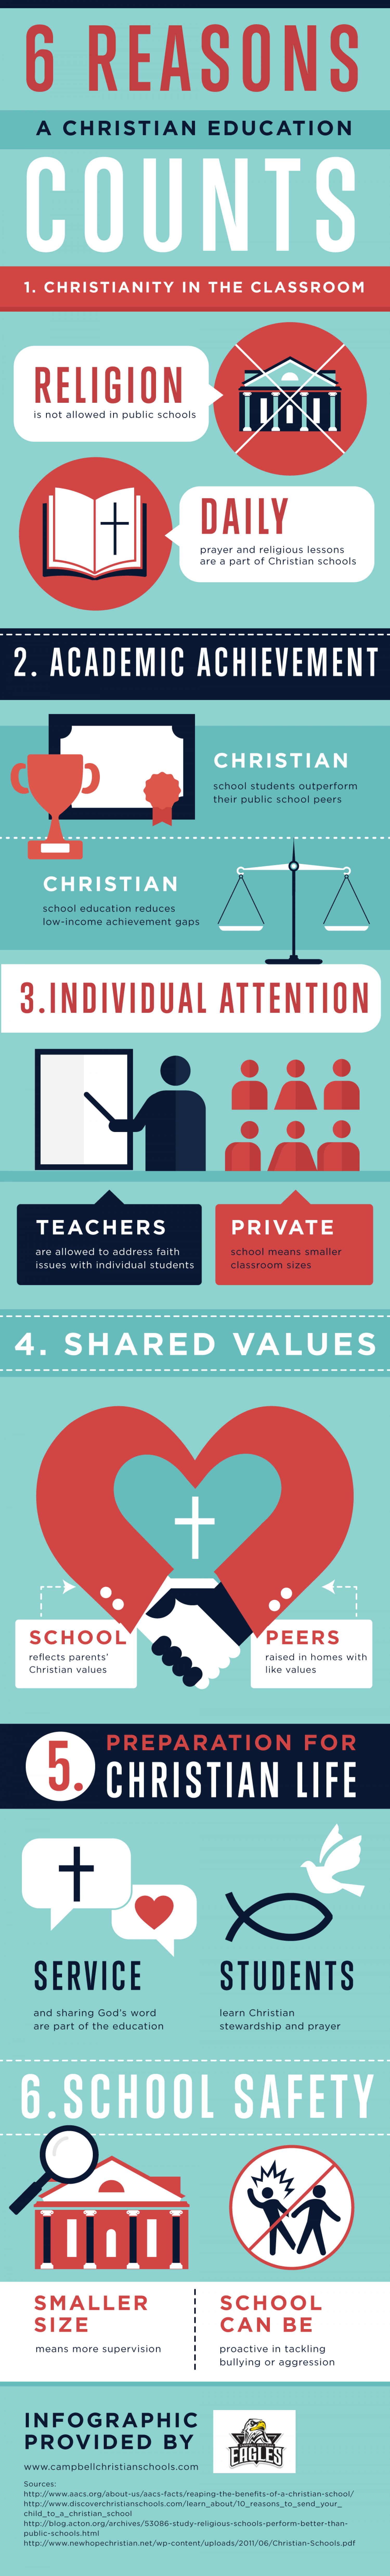 6 Reasons a Christian Education Counts Infographic